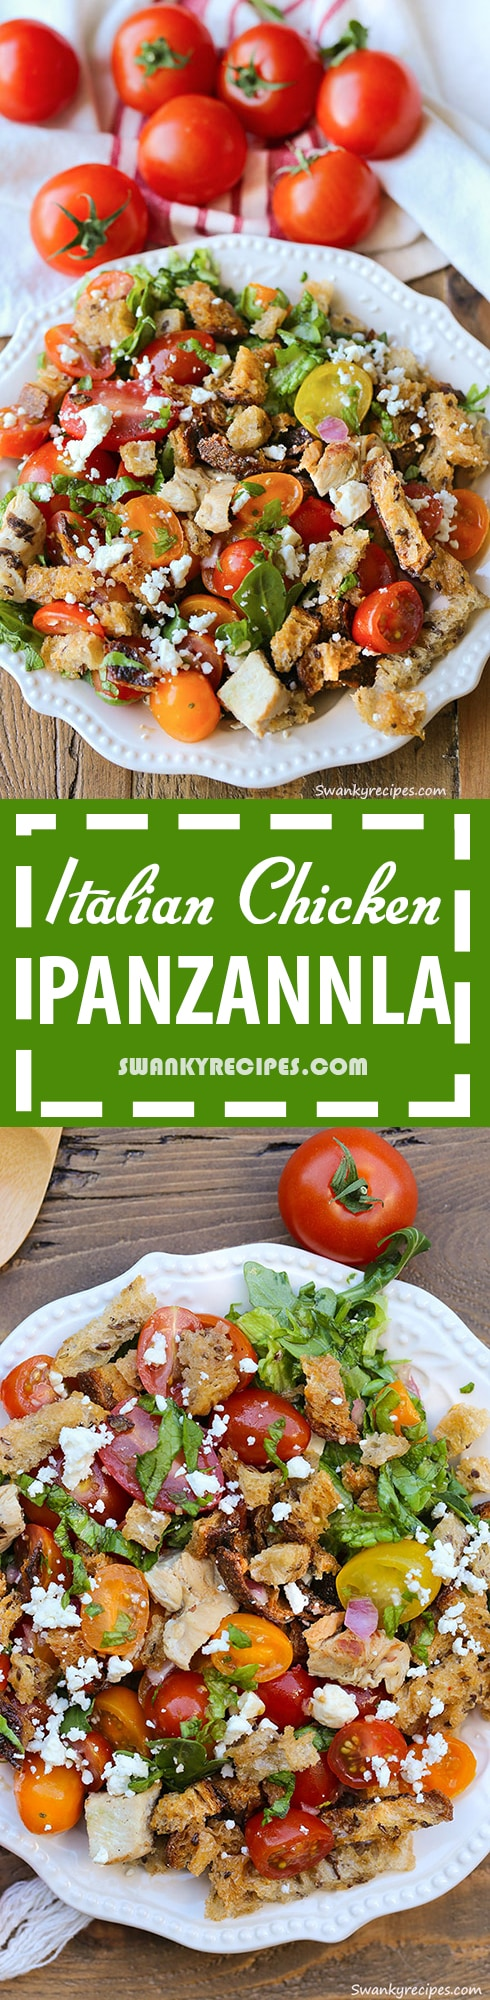 Italian Chicken Panzannla Recipe